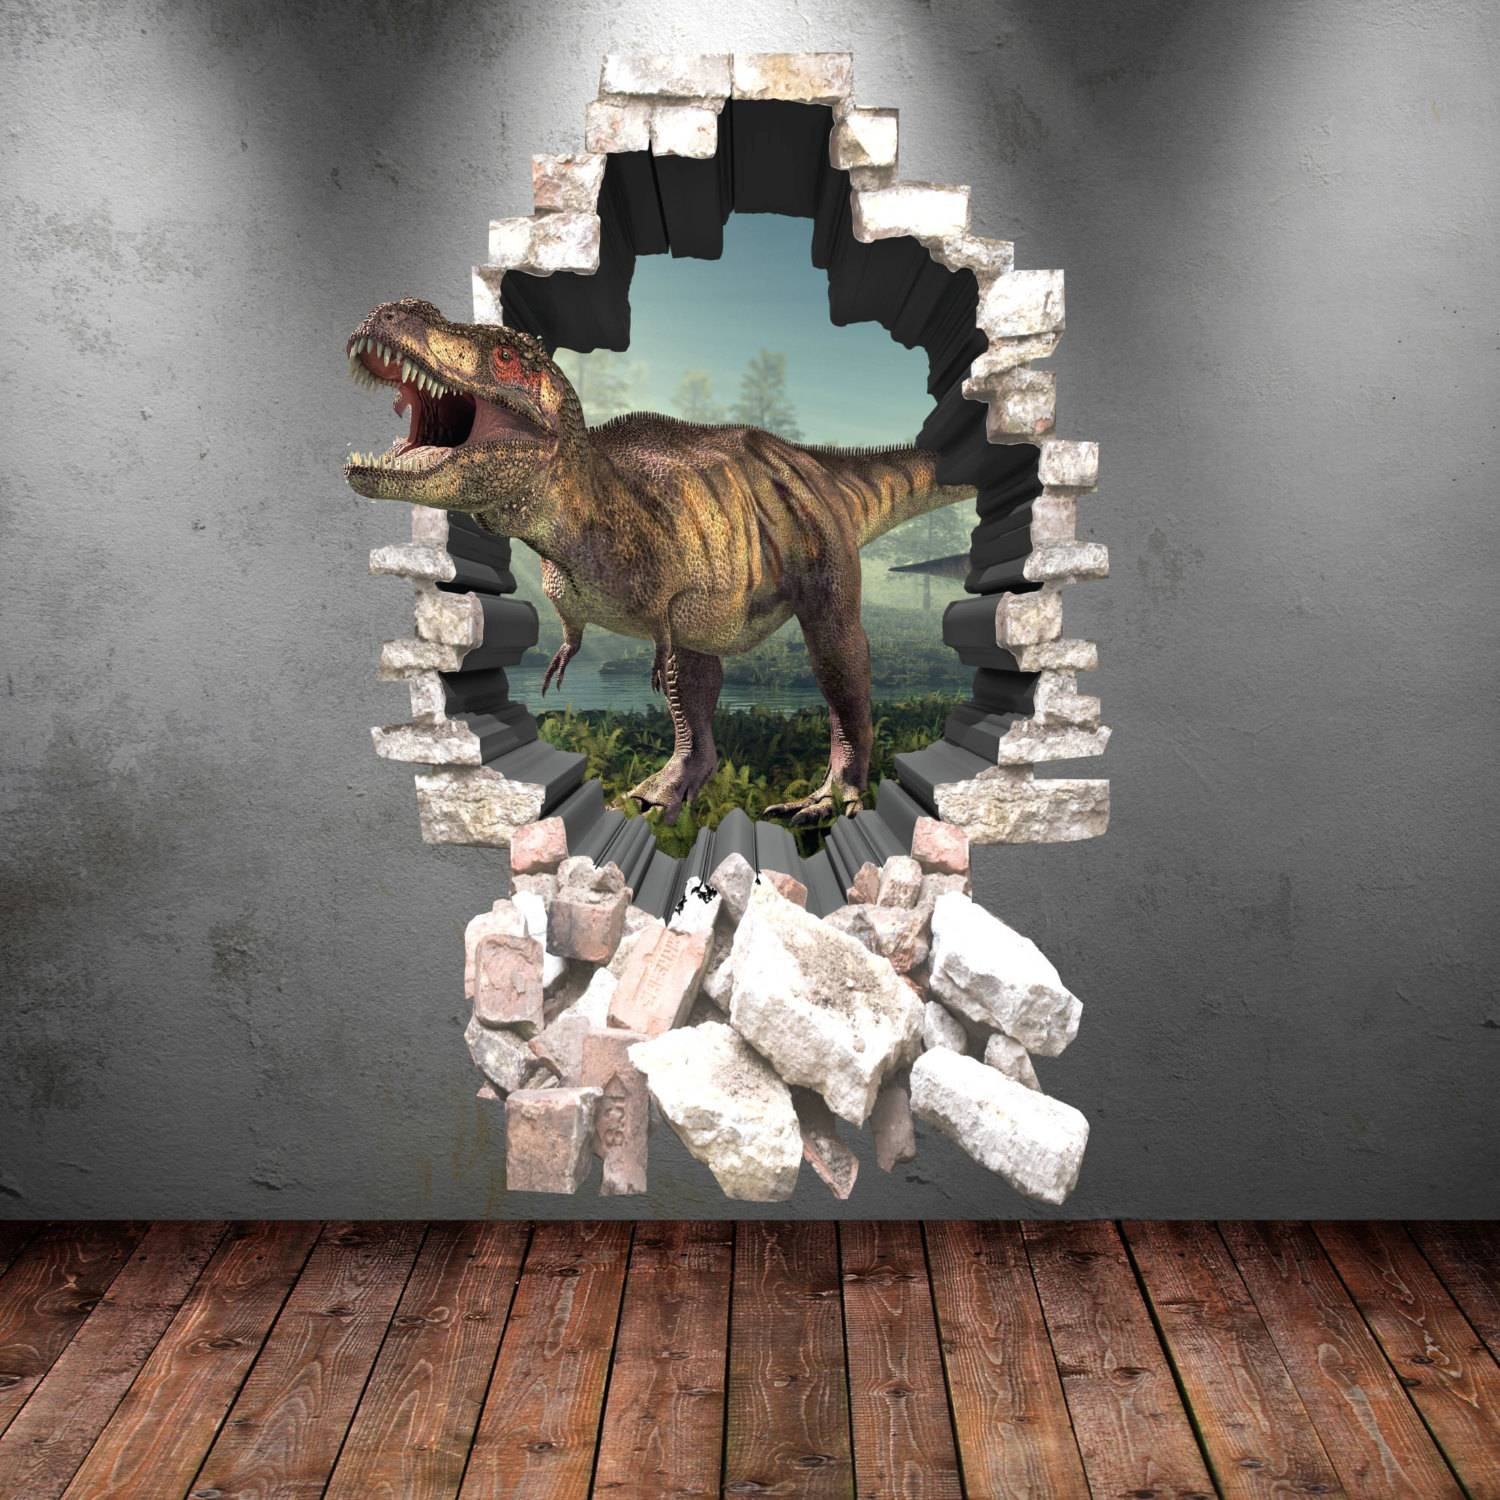 Stunning Design 3D Dinosaur Wall Art Shining Beetling Stegosaurus Regarding Current 3D Dinosaur Wall Art Decor (Gallery 10 of 20)